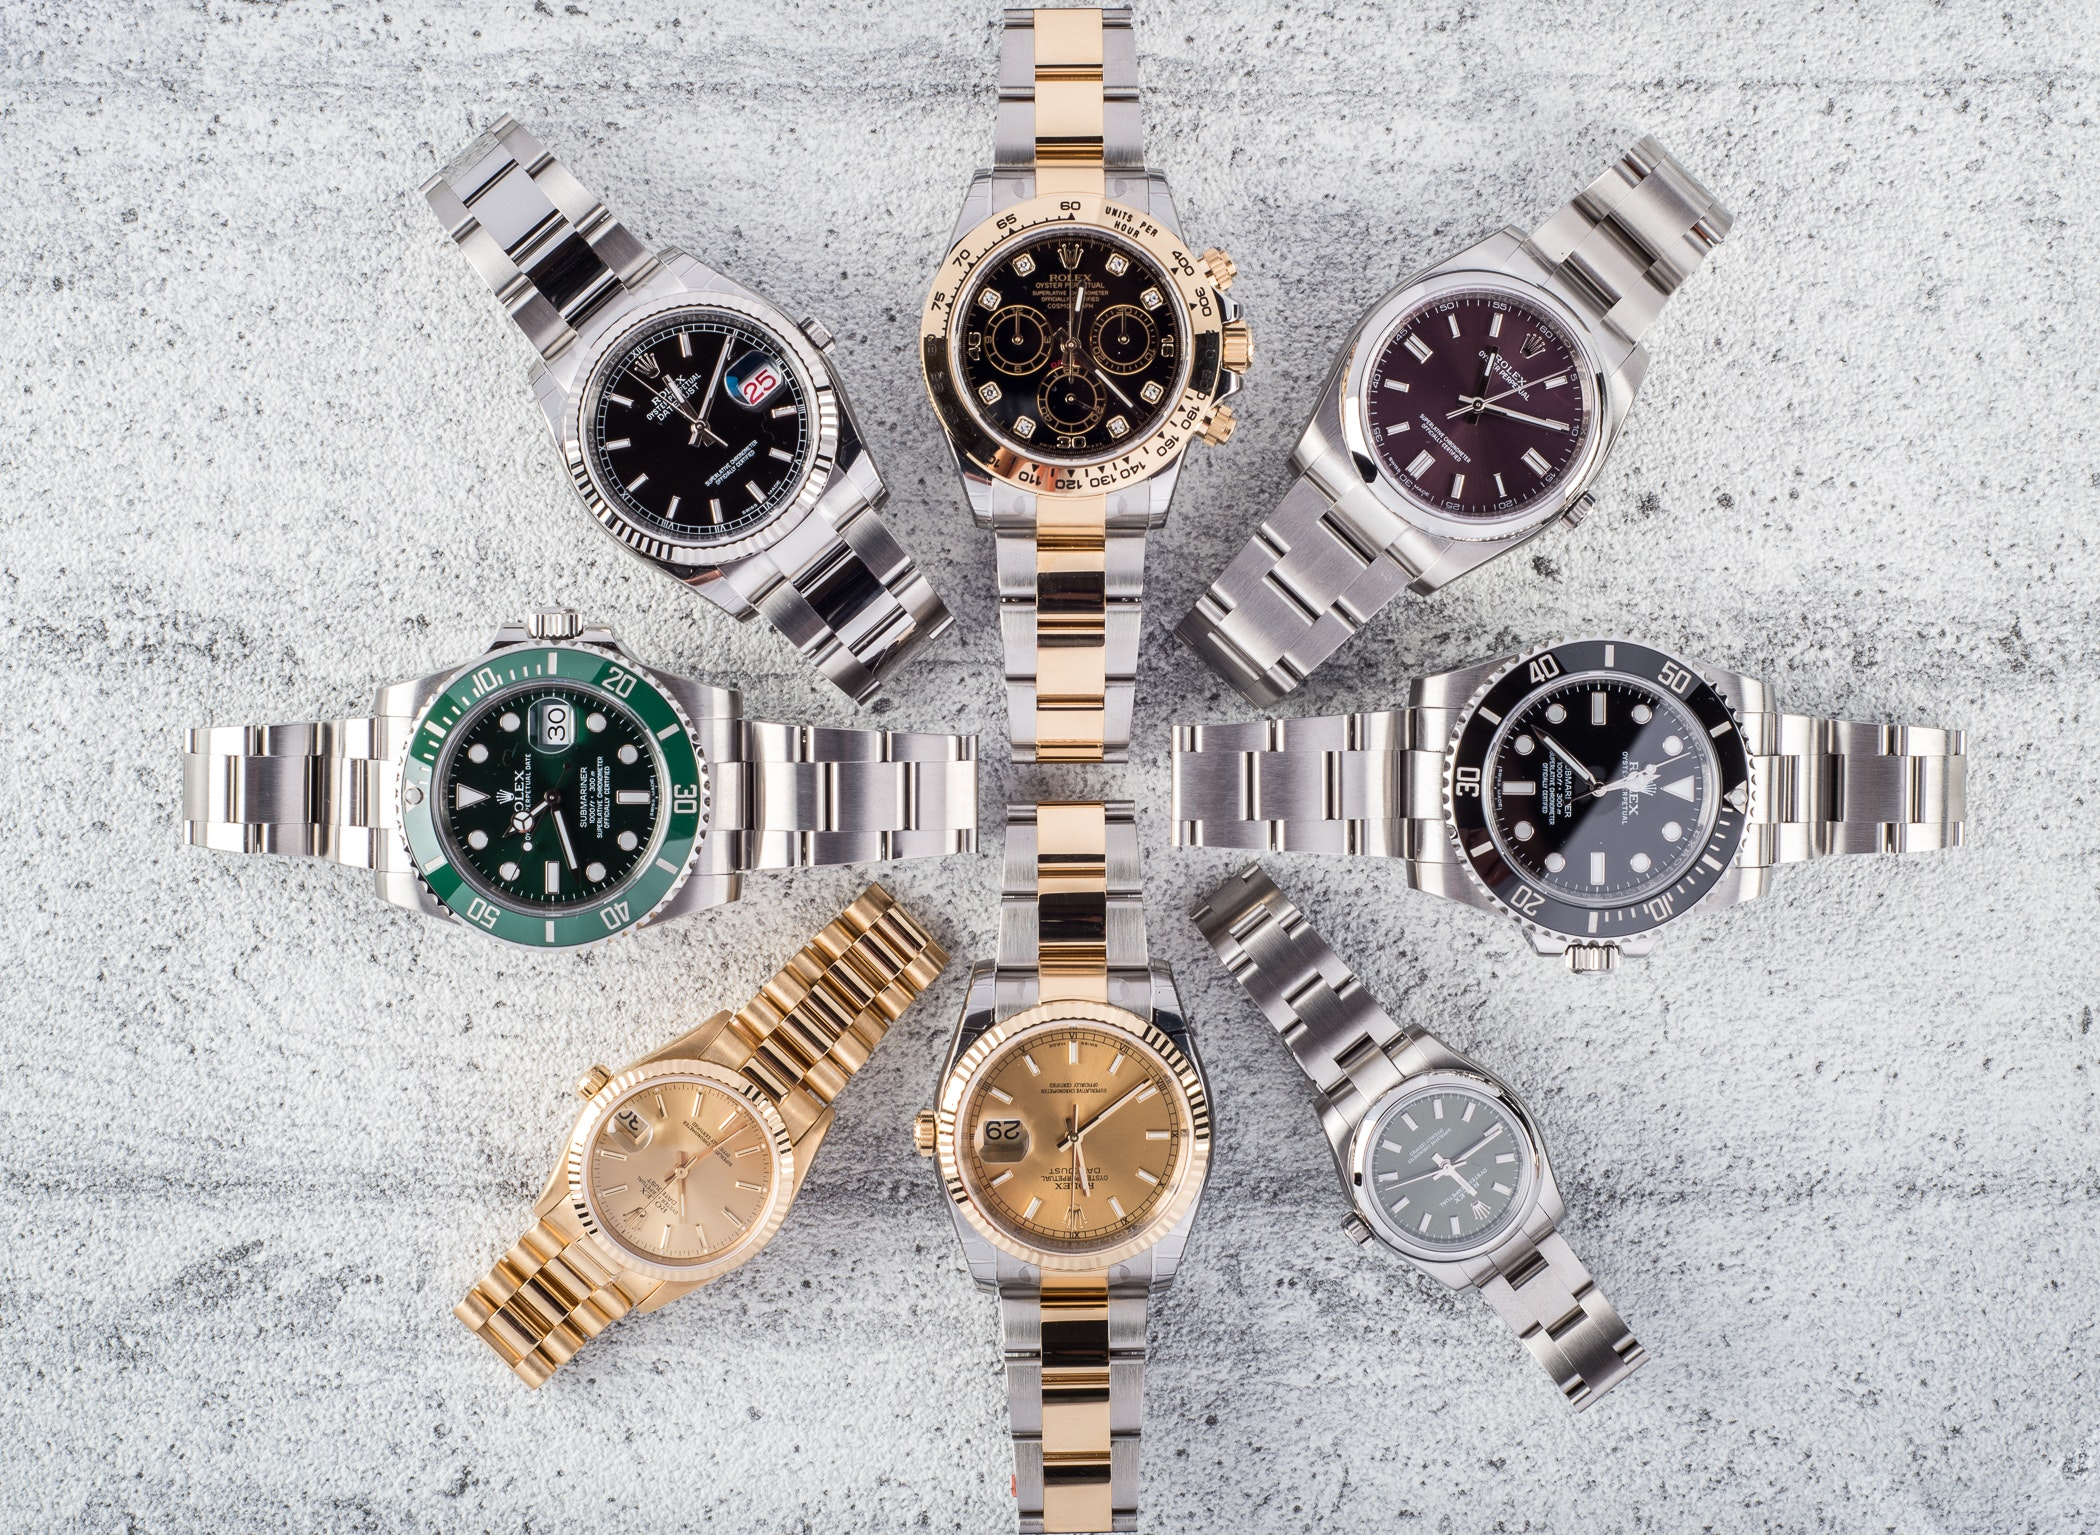 The Rolex Datejust: Making of an Icon